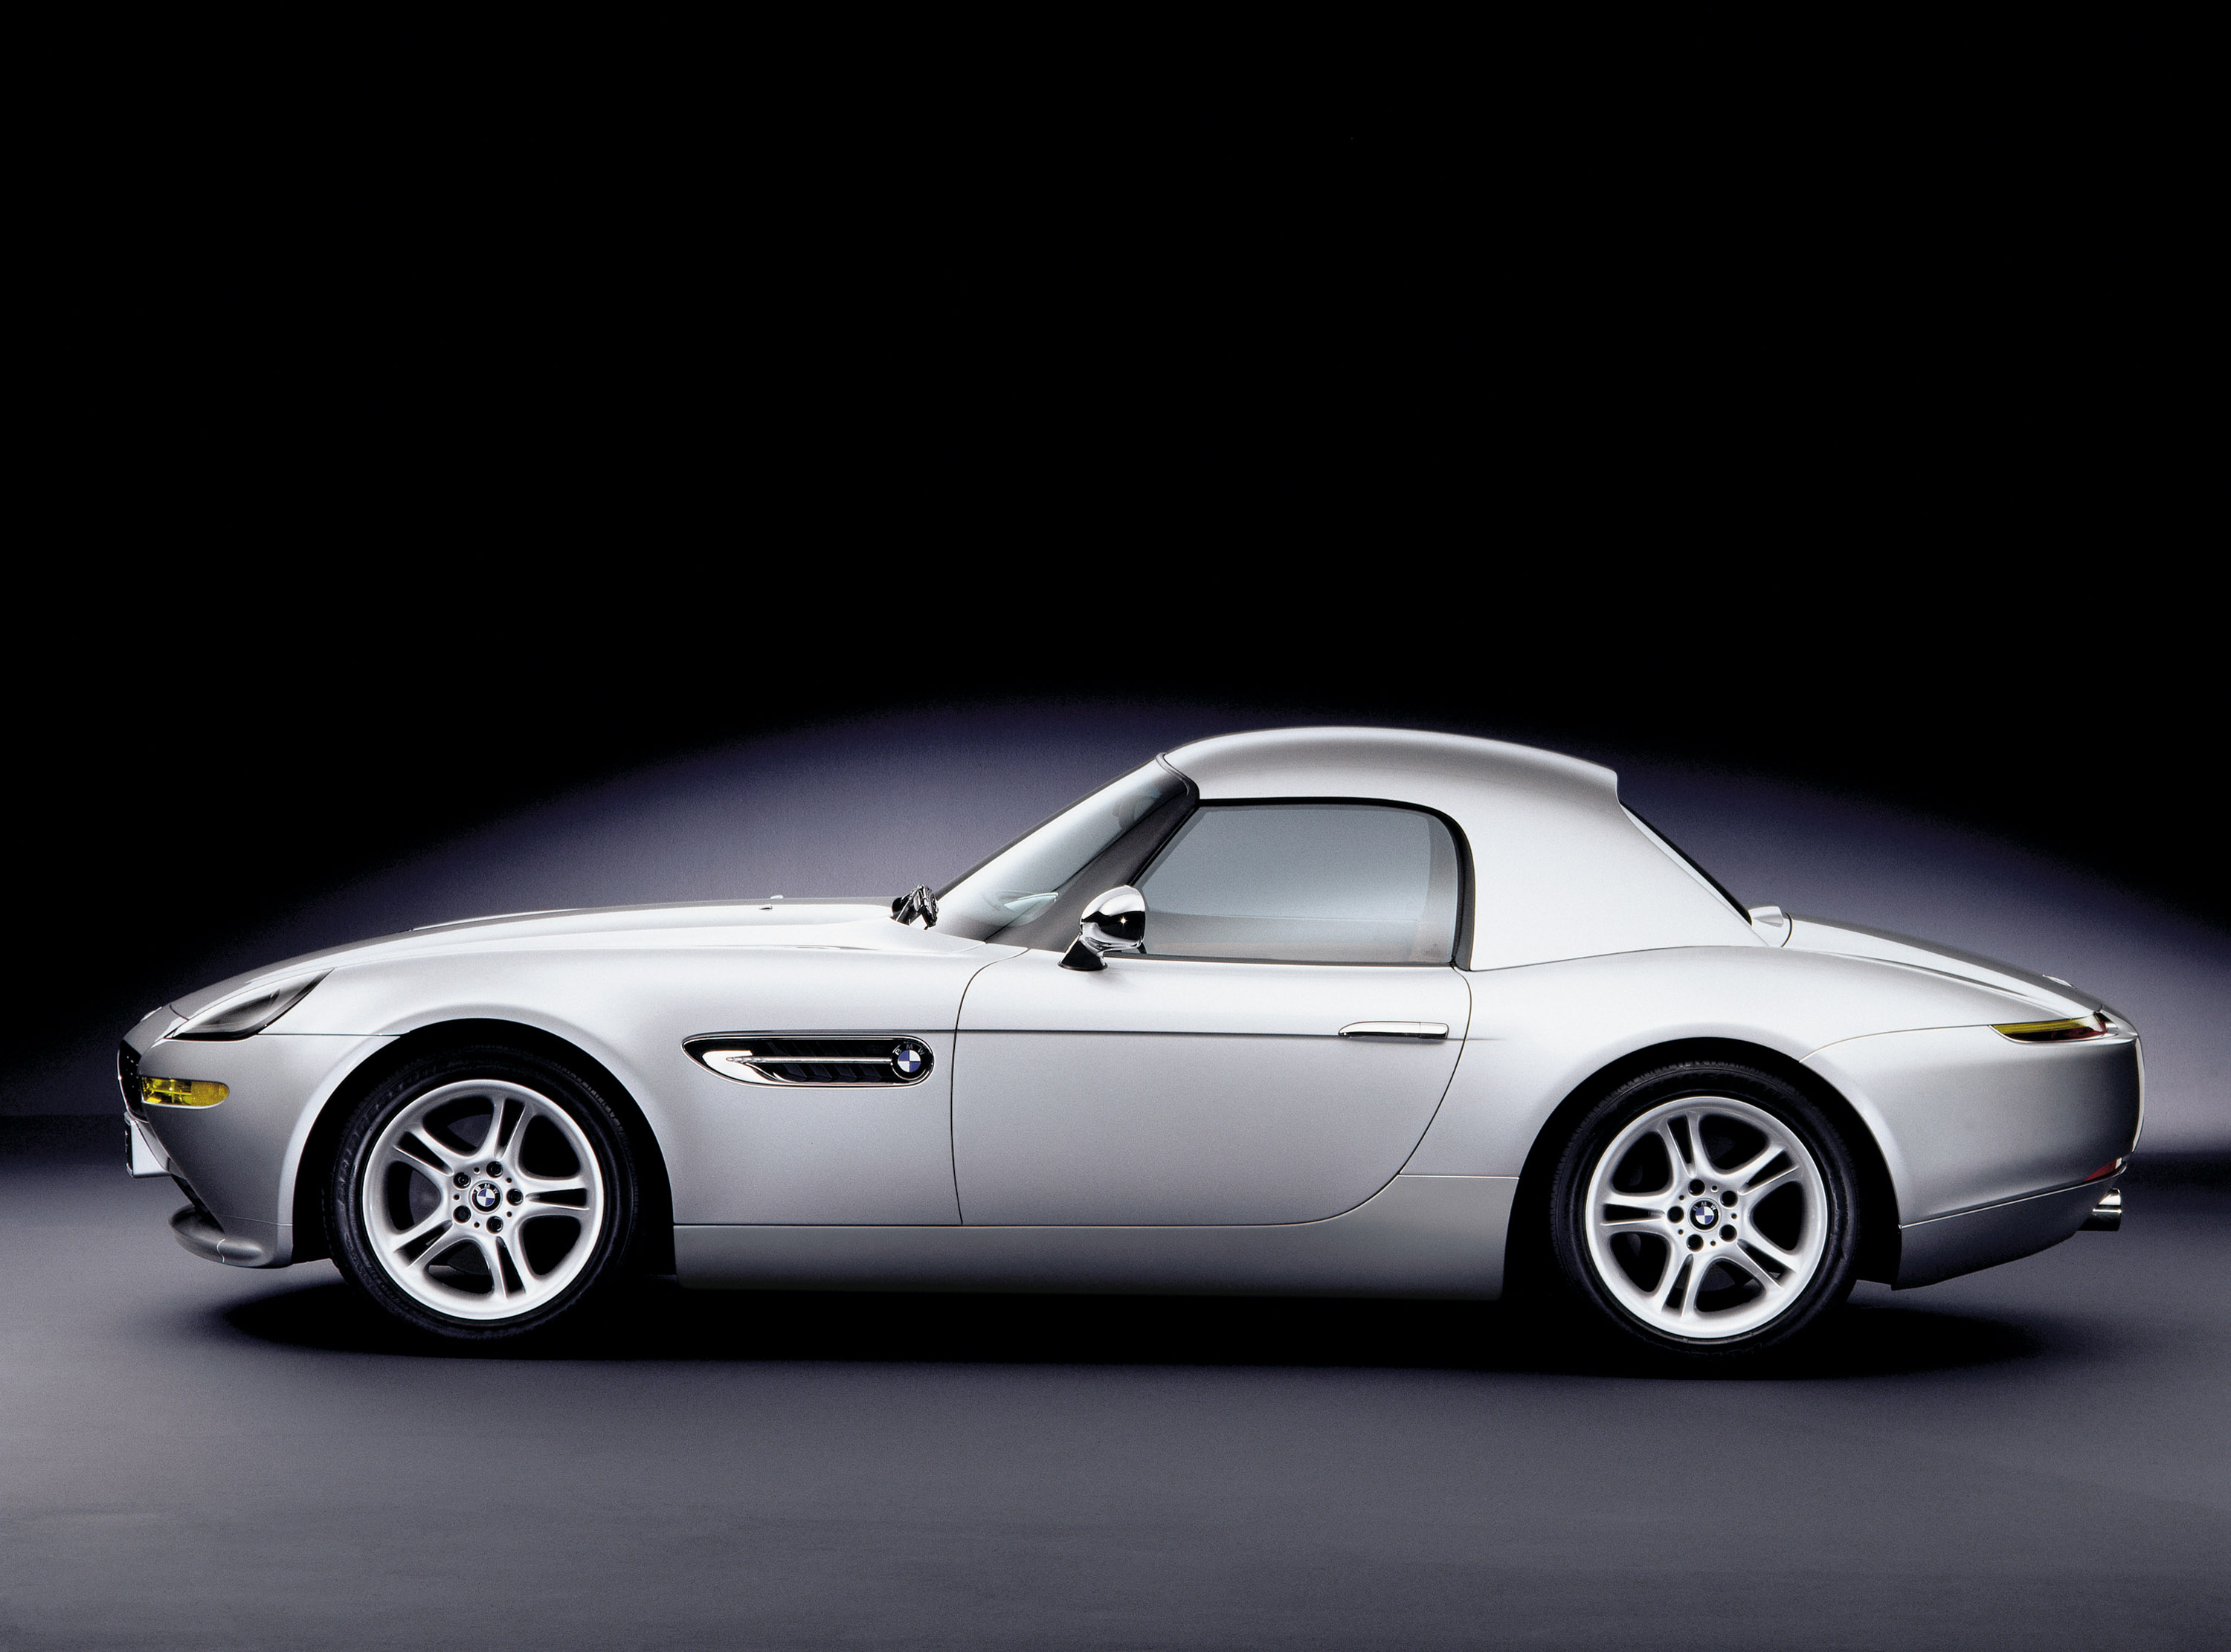 Bmw Z8 Roadster Price 113 361